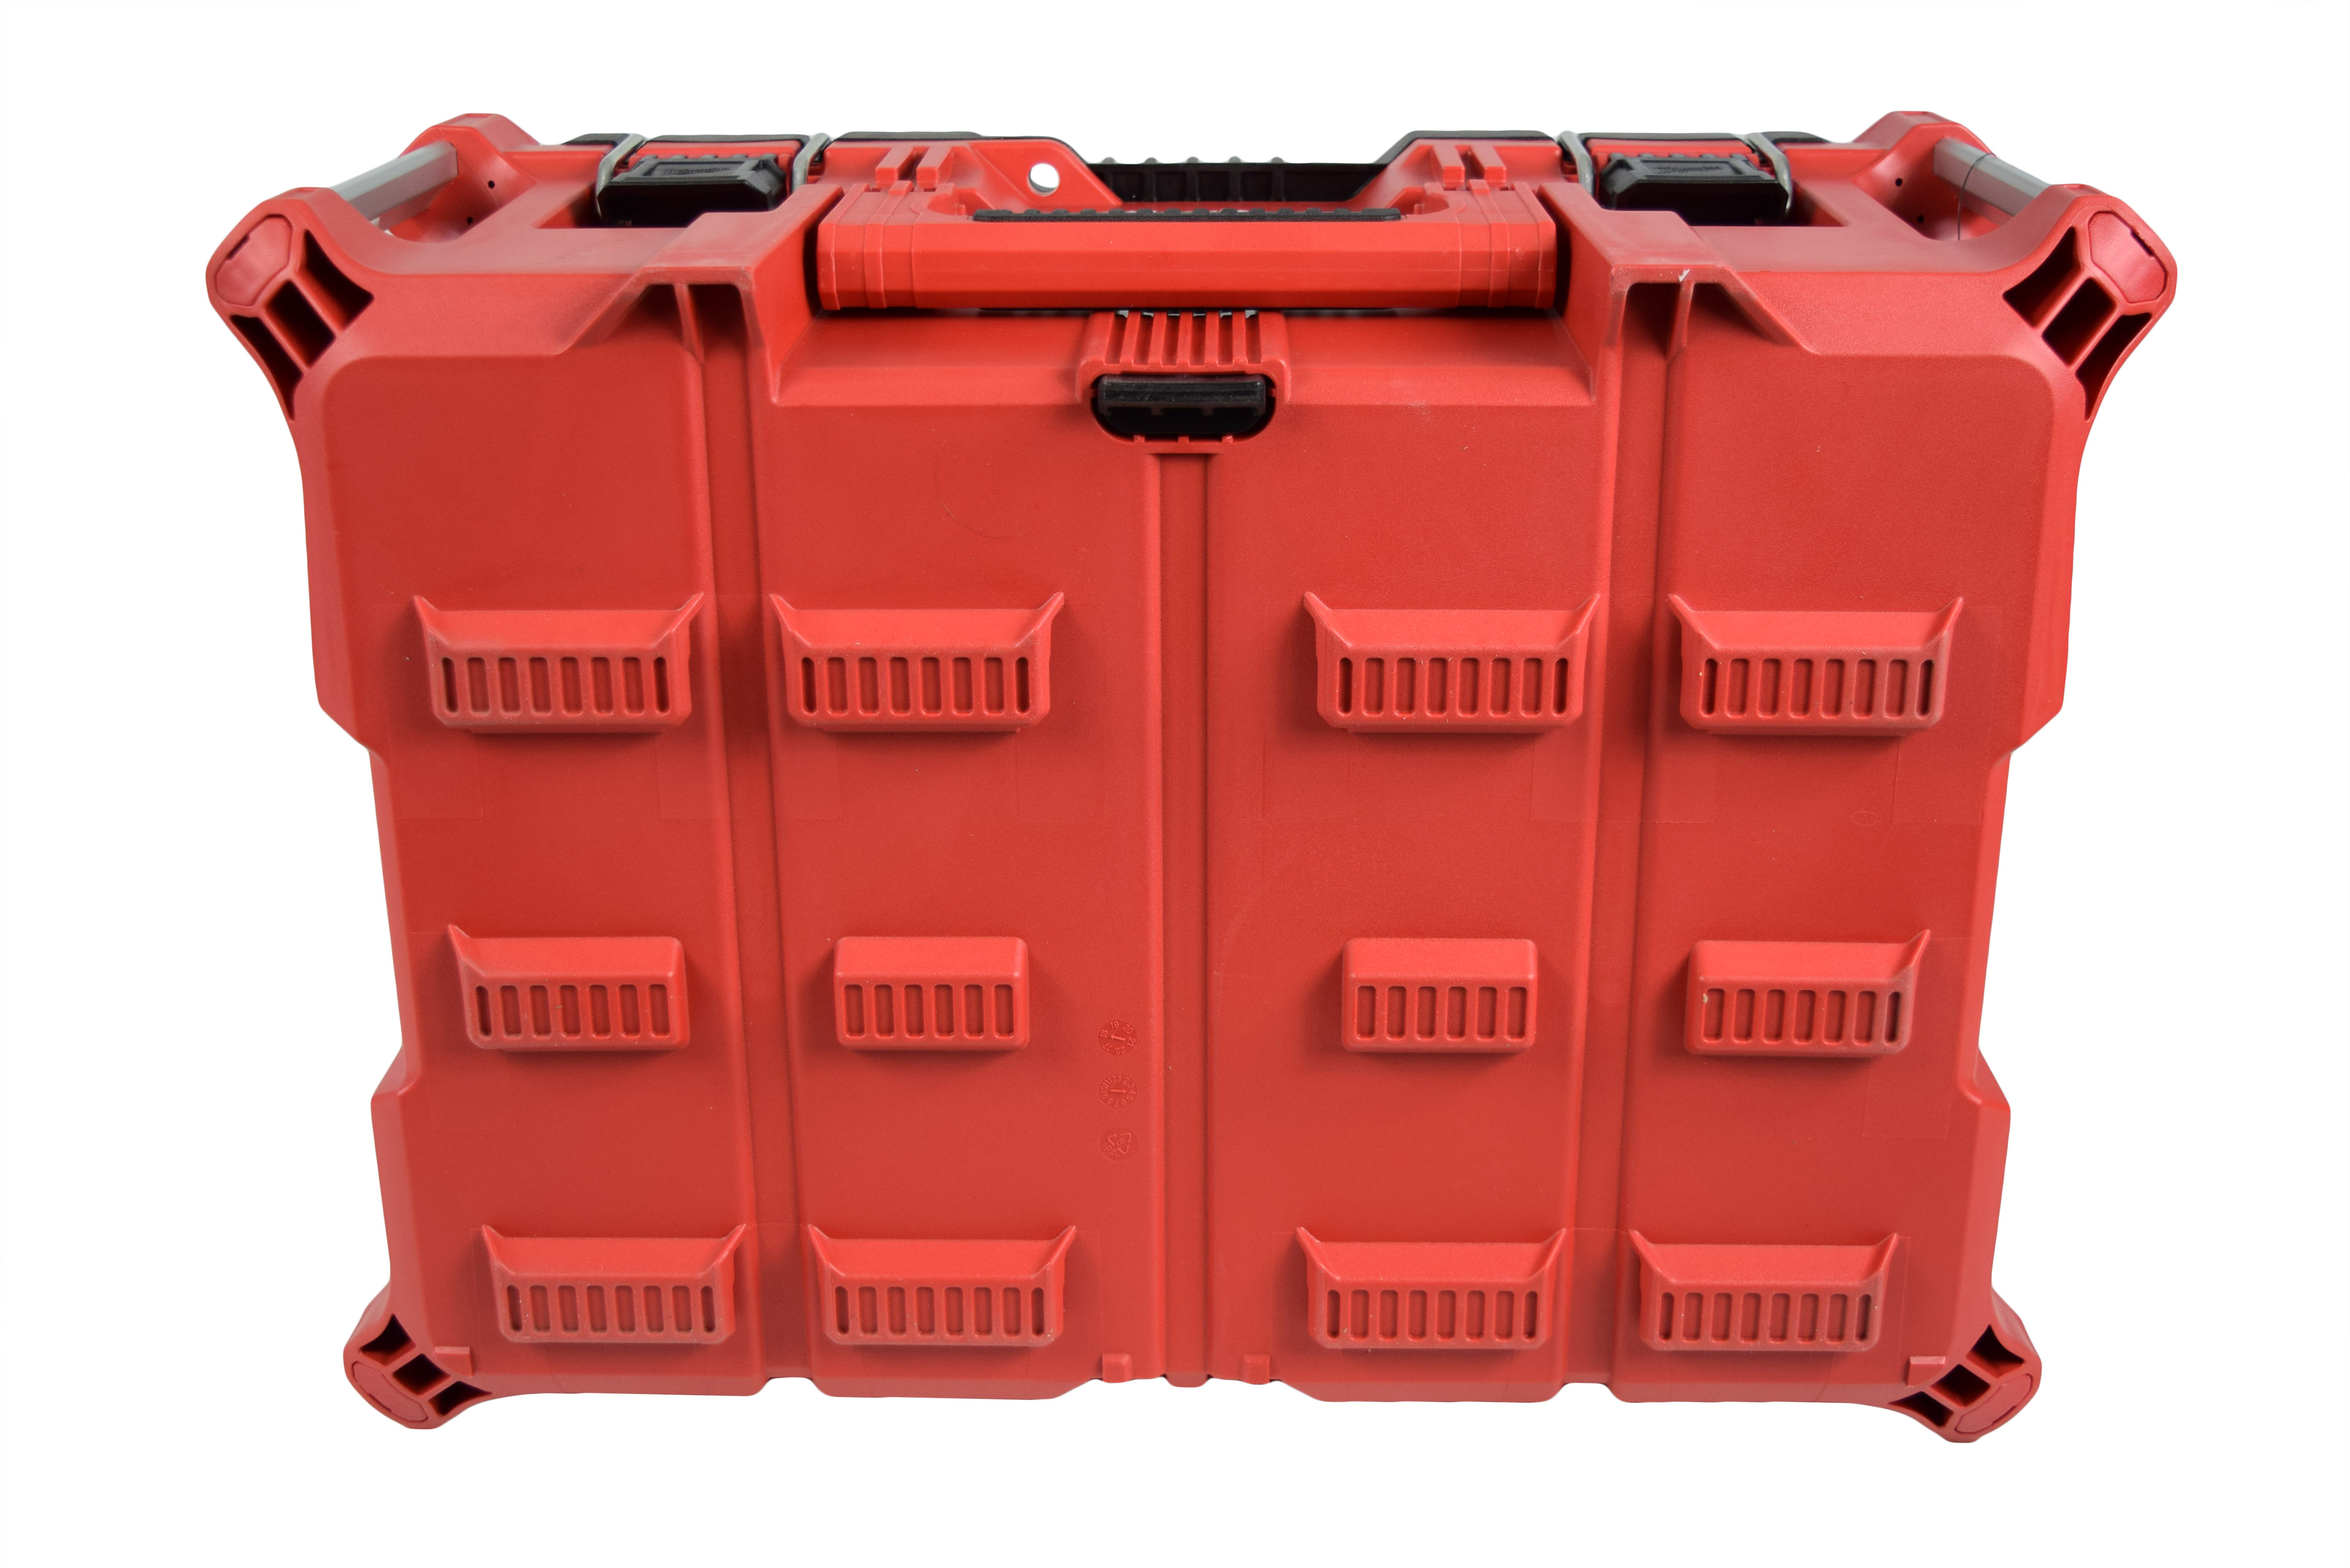 Milwaukee-48-22-8425-Packout-22-in.-Large-Tool-Box-Tool-Case-image-5